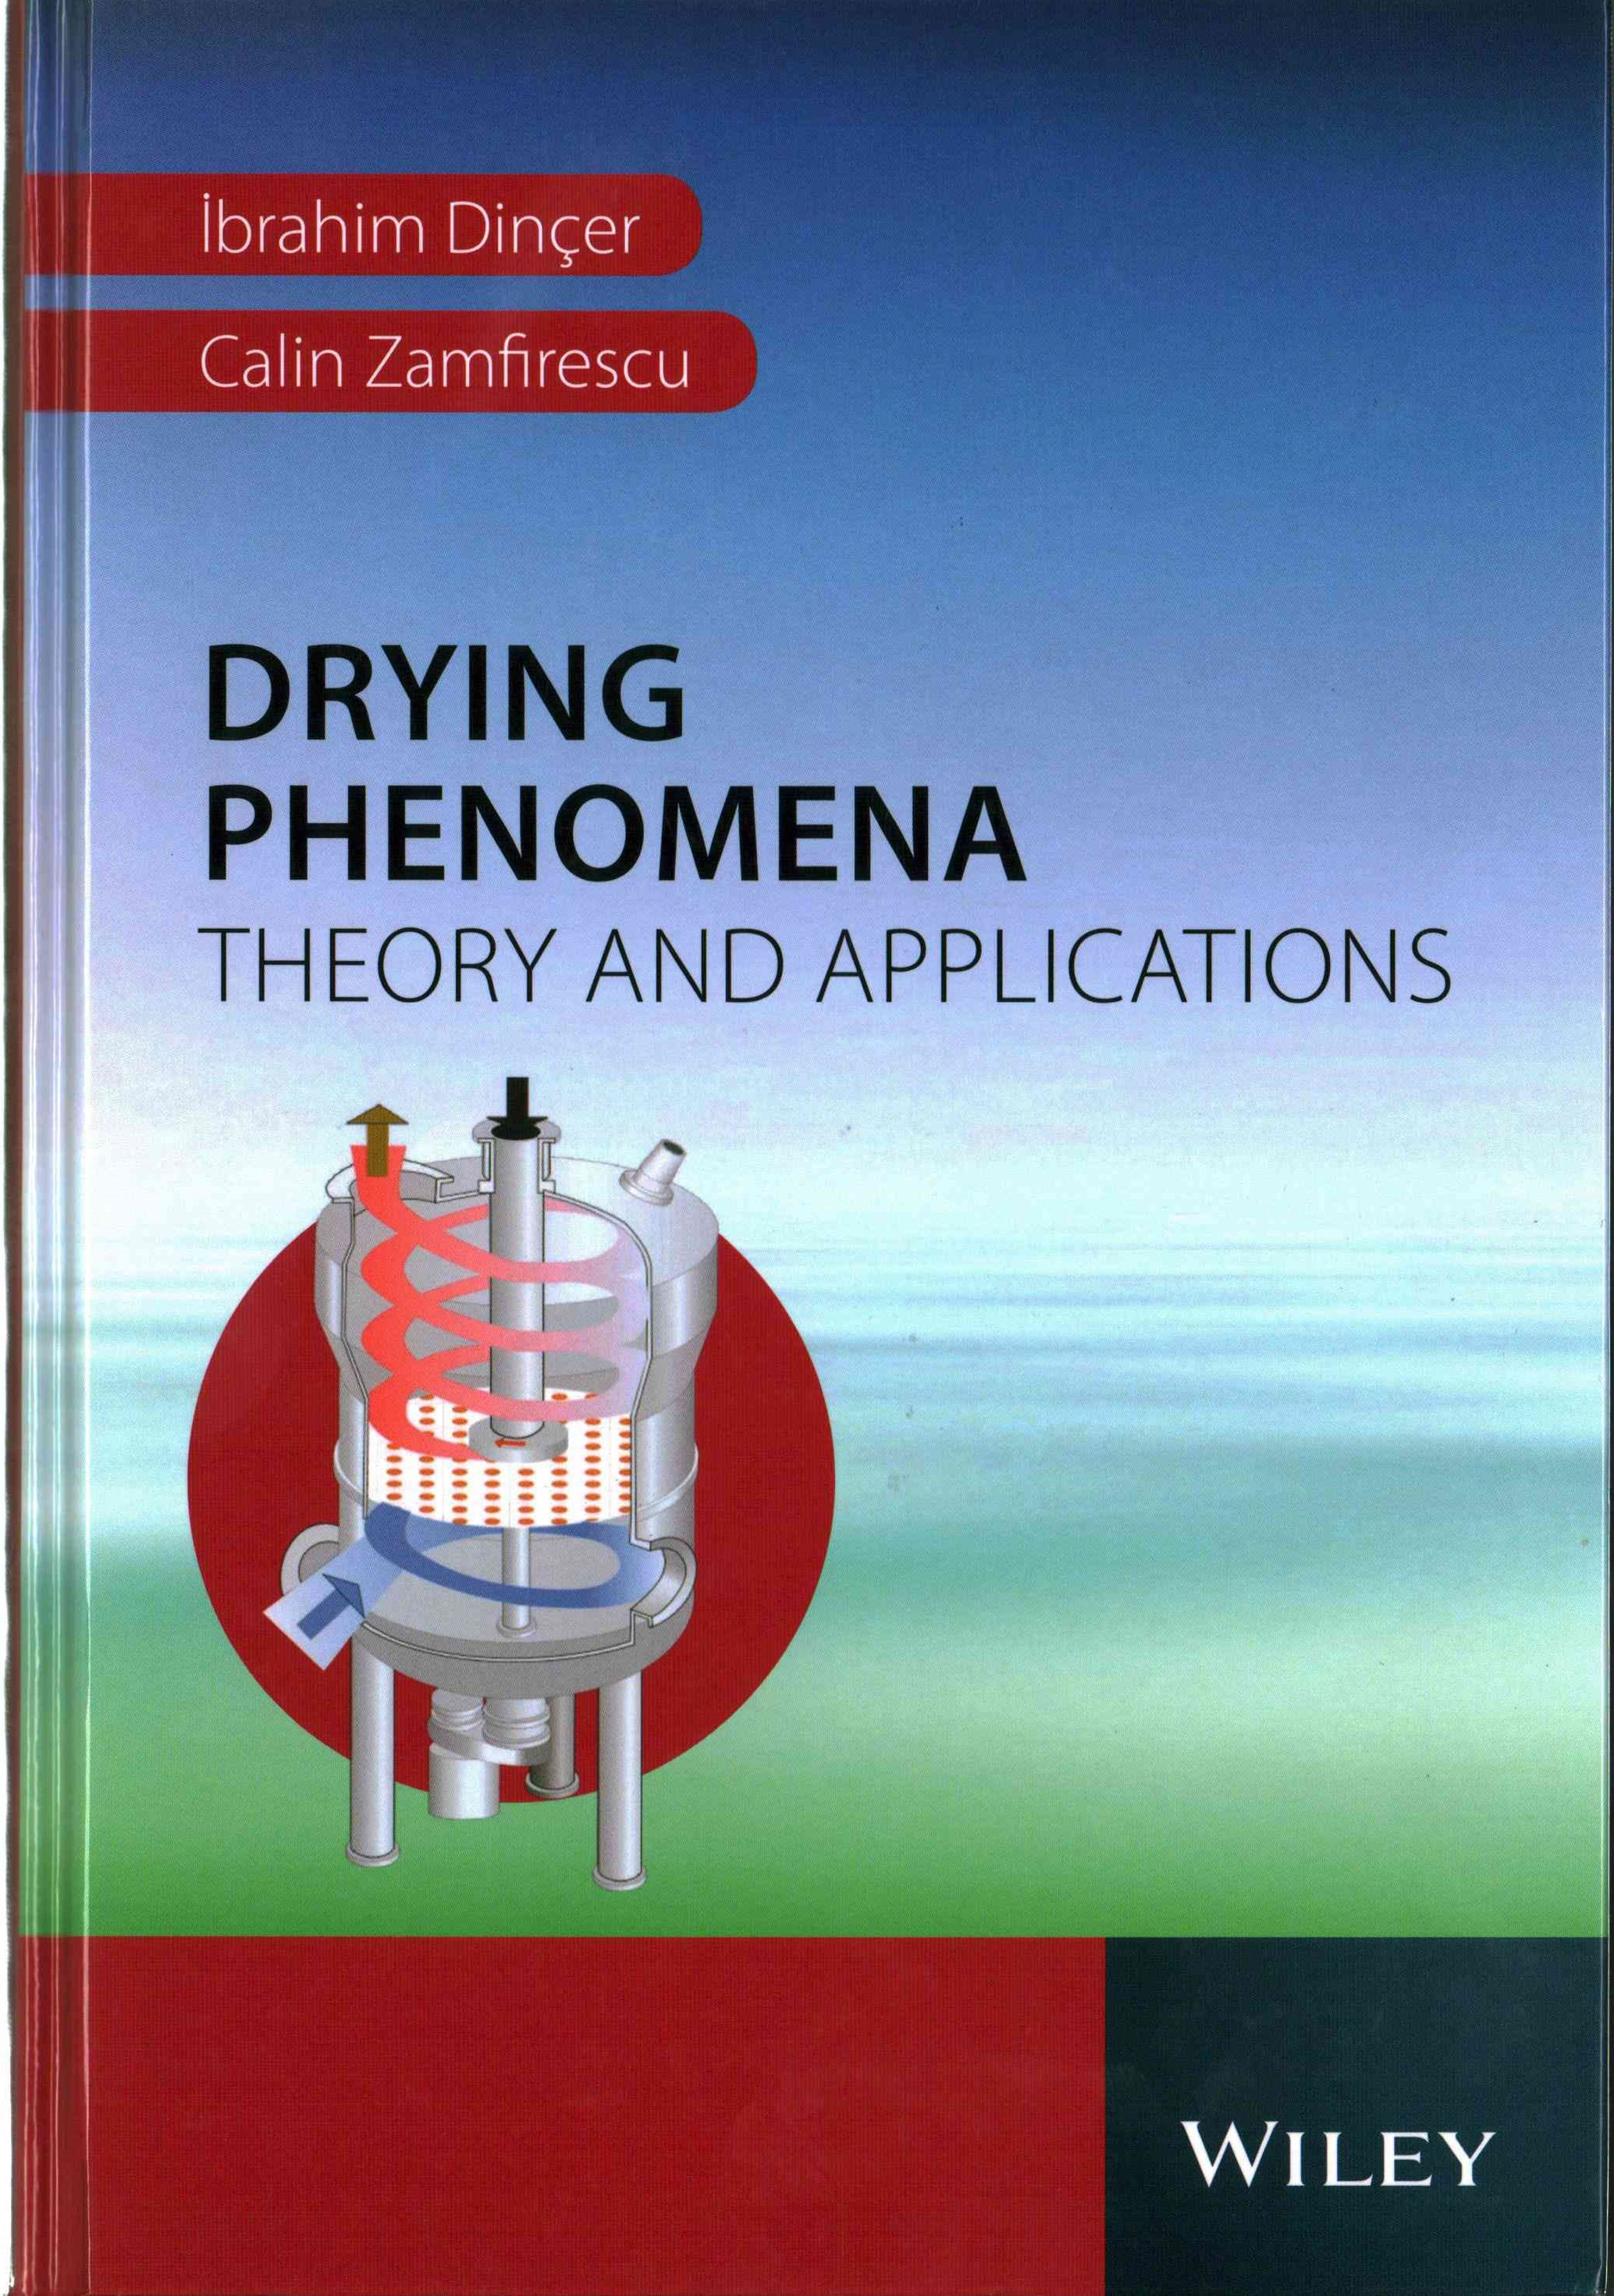 Drying Phenomena - Theory and Applications